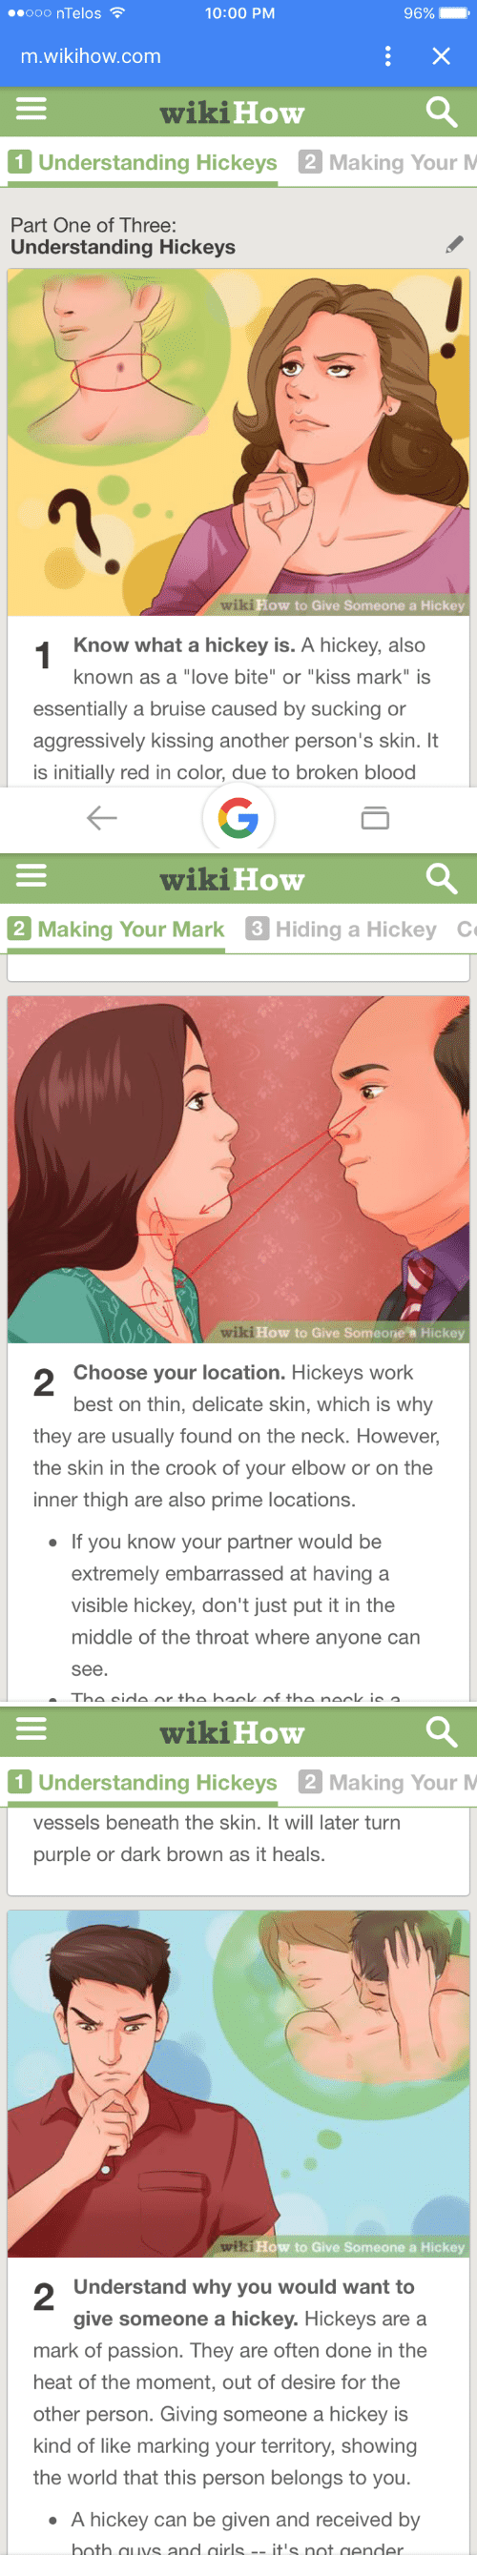 "Love, Work, and Best: ooo nTelos  10:00 PM  96%  m.wikihow.com  wikiHow  1 Understanding Hickeys 2 Making Your M  Part One of Three:  Understanding  Hickeys  How to Give Someone a Hickey  Know what a hickey is. A hickey, also  known as a ""love bite"" or ""kiss mark"" is  essentially a bruise caused by sucking or  aggressively kissing another person's skin. It  is initially red in color, due to broken blood   wikiHow  Making Your Mark 3 Hiding a Hickey  เช่ :How to Give Someonea Hickey  2  Choose your location. Hickeys work  best on thin, delicate skin, which is why  they are usually found on the neck. However,  the skin in the crook of your elbow or on the  inner thigh are also prime locations  If you know your partner would be  extremely embarrassed at having a  visible hickey, don't just put it in the  middle of the throat where anyone can  see.   wikiHow  1 Understanding Hickeys 2 Making Your M  vessels beneath the skin. It will later turn  purple or dark brown as it heals.  ow to Give Someone a Hickey  2  Understand why you would want to  give someone a hickey. Hickeys are a  mark of passion. They are often done in the  heat of the moment, out of desire for the  other person. Giving someone a hickey is  kind of like marking your territory, showing  the world that this person belongs to you.  A hickey can be given and received by  hath quys and airls-it's not gendler"